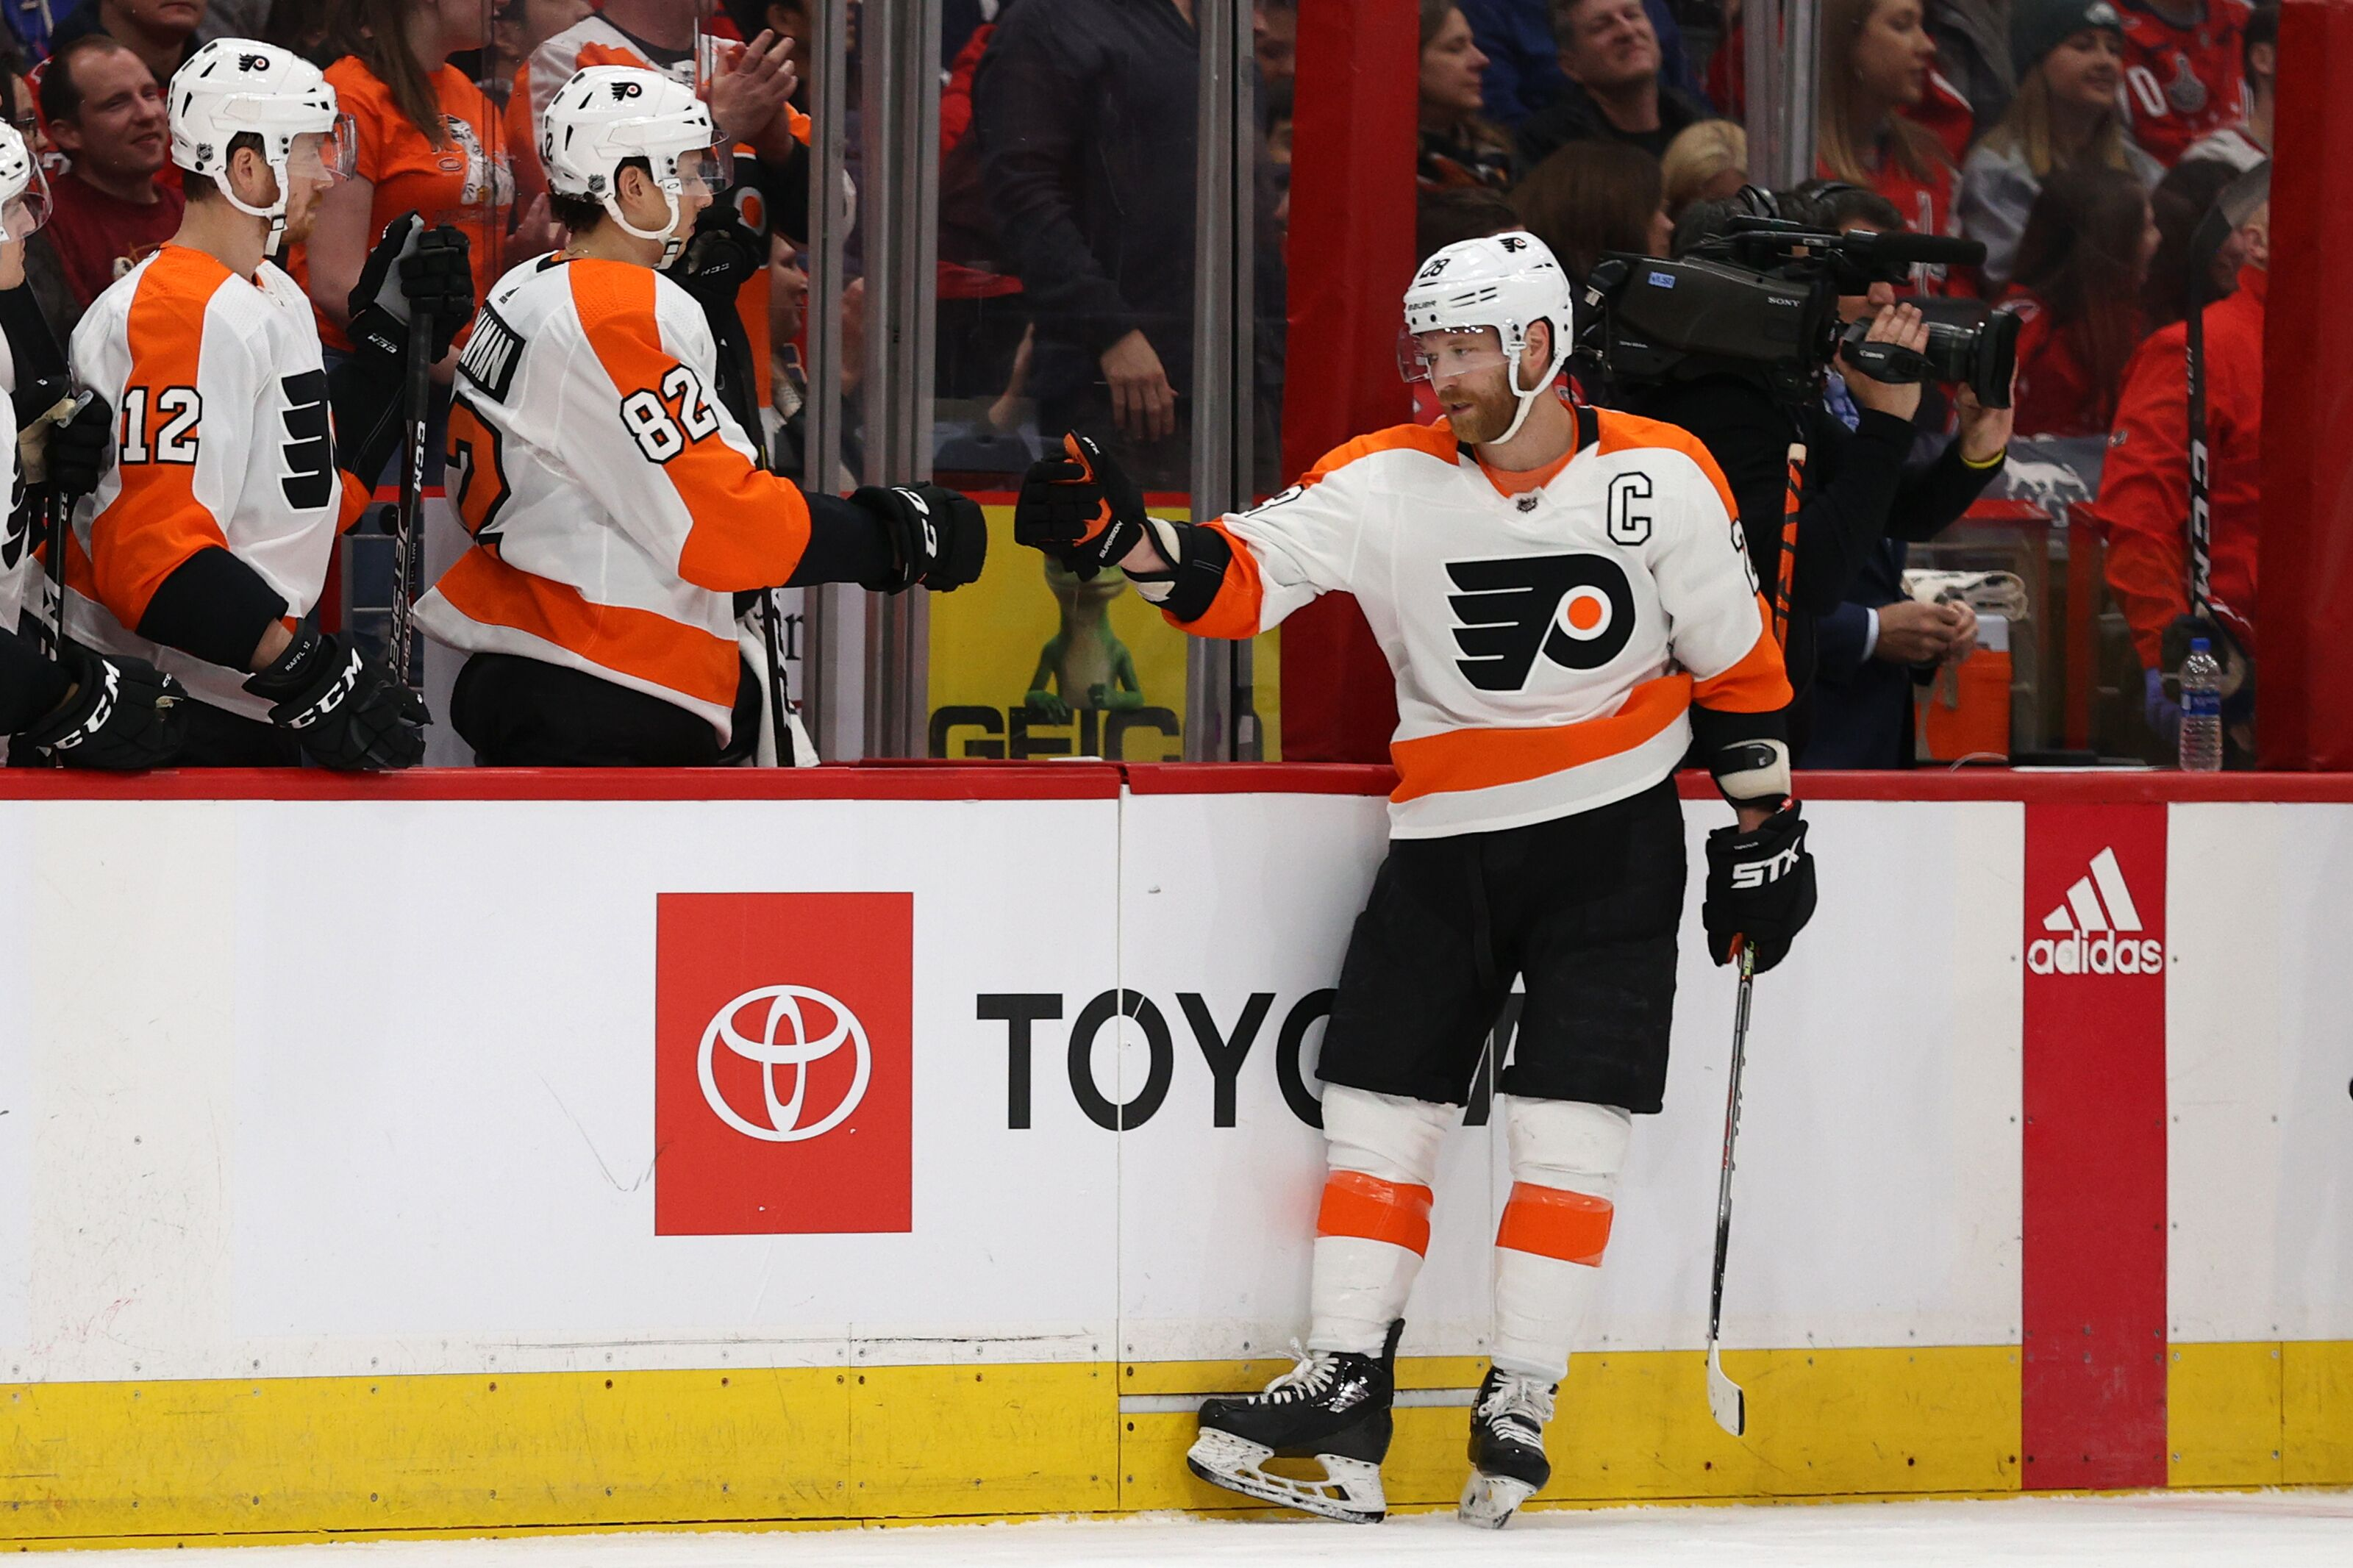 Weekly Buzz: The Flyers Are In The Midst Of A Key Stretch